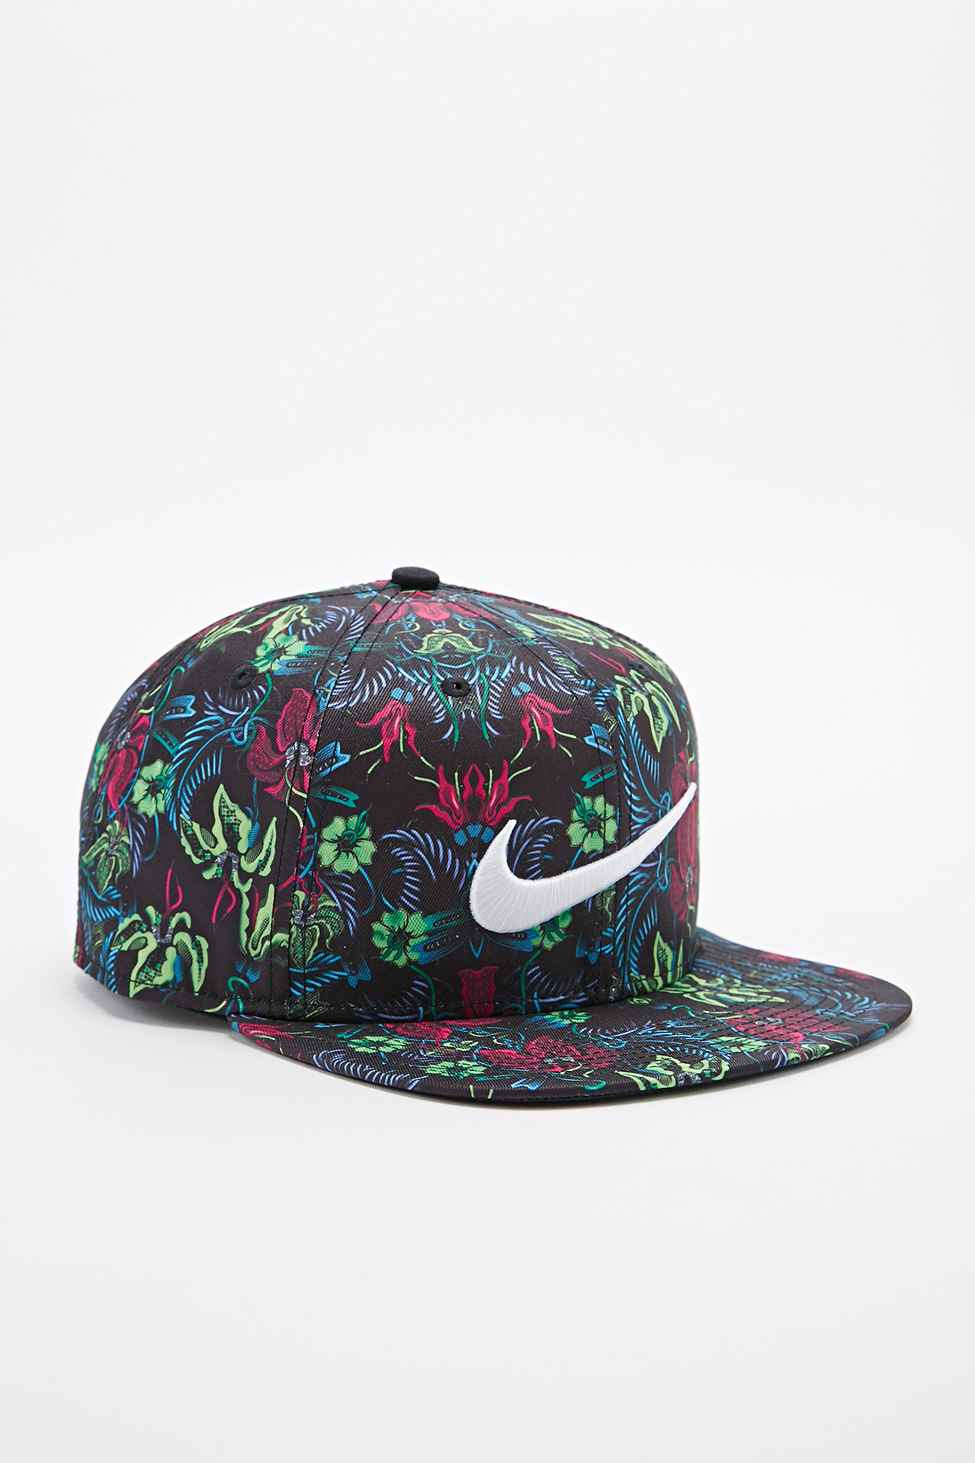 59c5e921 ... best price nike pro floral snapback cap in green and pink for men lyst  367fa 2888a